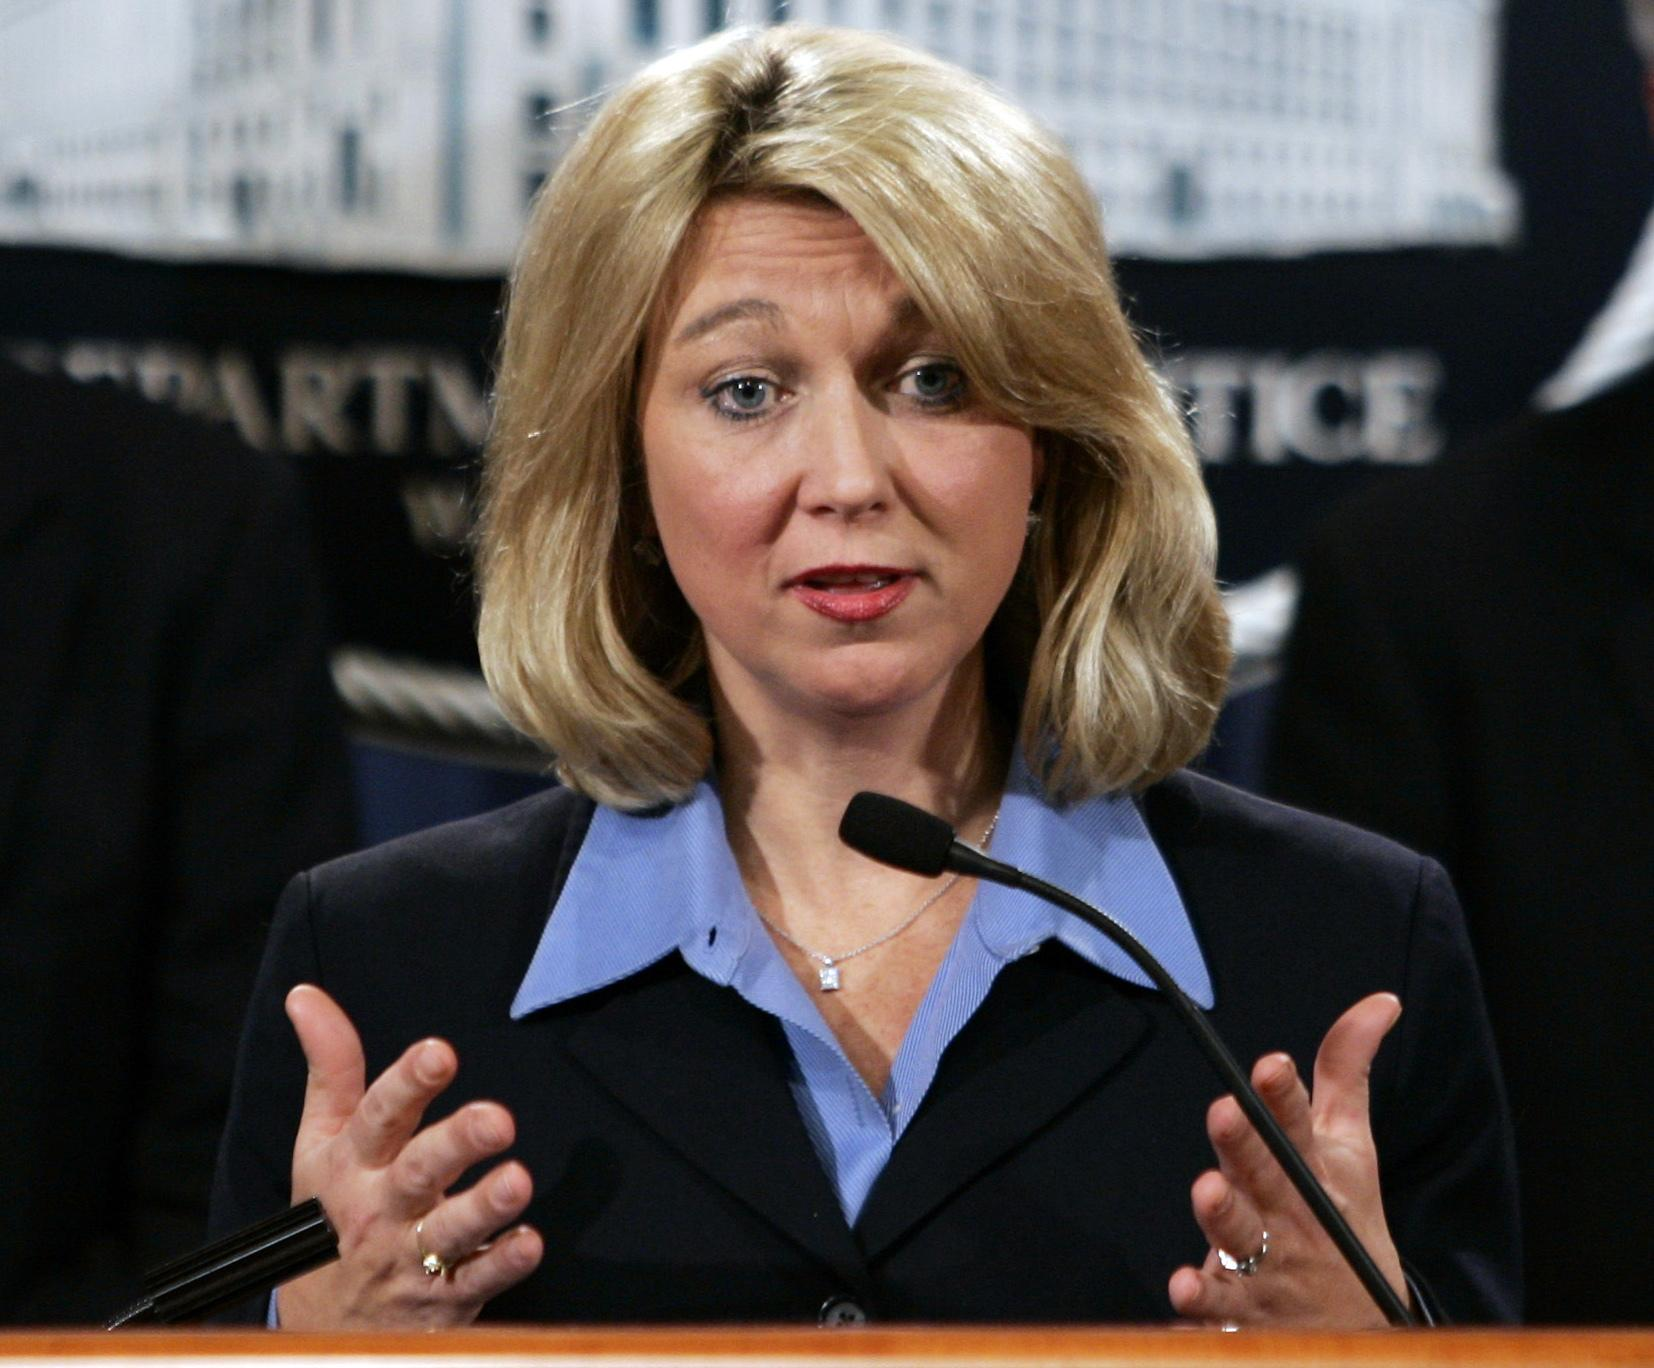 FILE - In this Jan. 3, 2006, file photo, then-Assistant Attorney General for the Criminal Division Alice Fisher briefs reporters at the Justice Department in Washington. President Donald Trump is considering nearly a dozen candidates to succeed ousted FBI Director James Comey, choosing from a group that includes several lawmakers, attorneys and law enforcement officials. (AP Photo/J. Scott Applewhite, File)